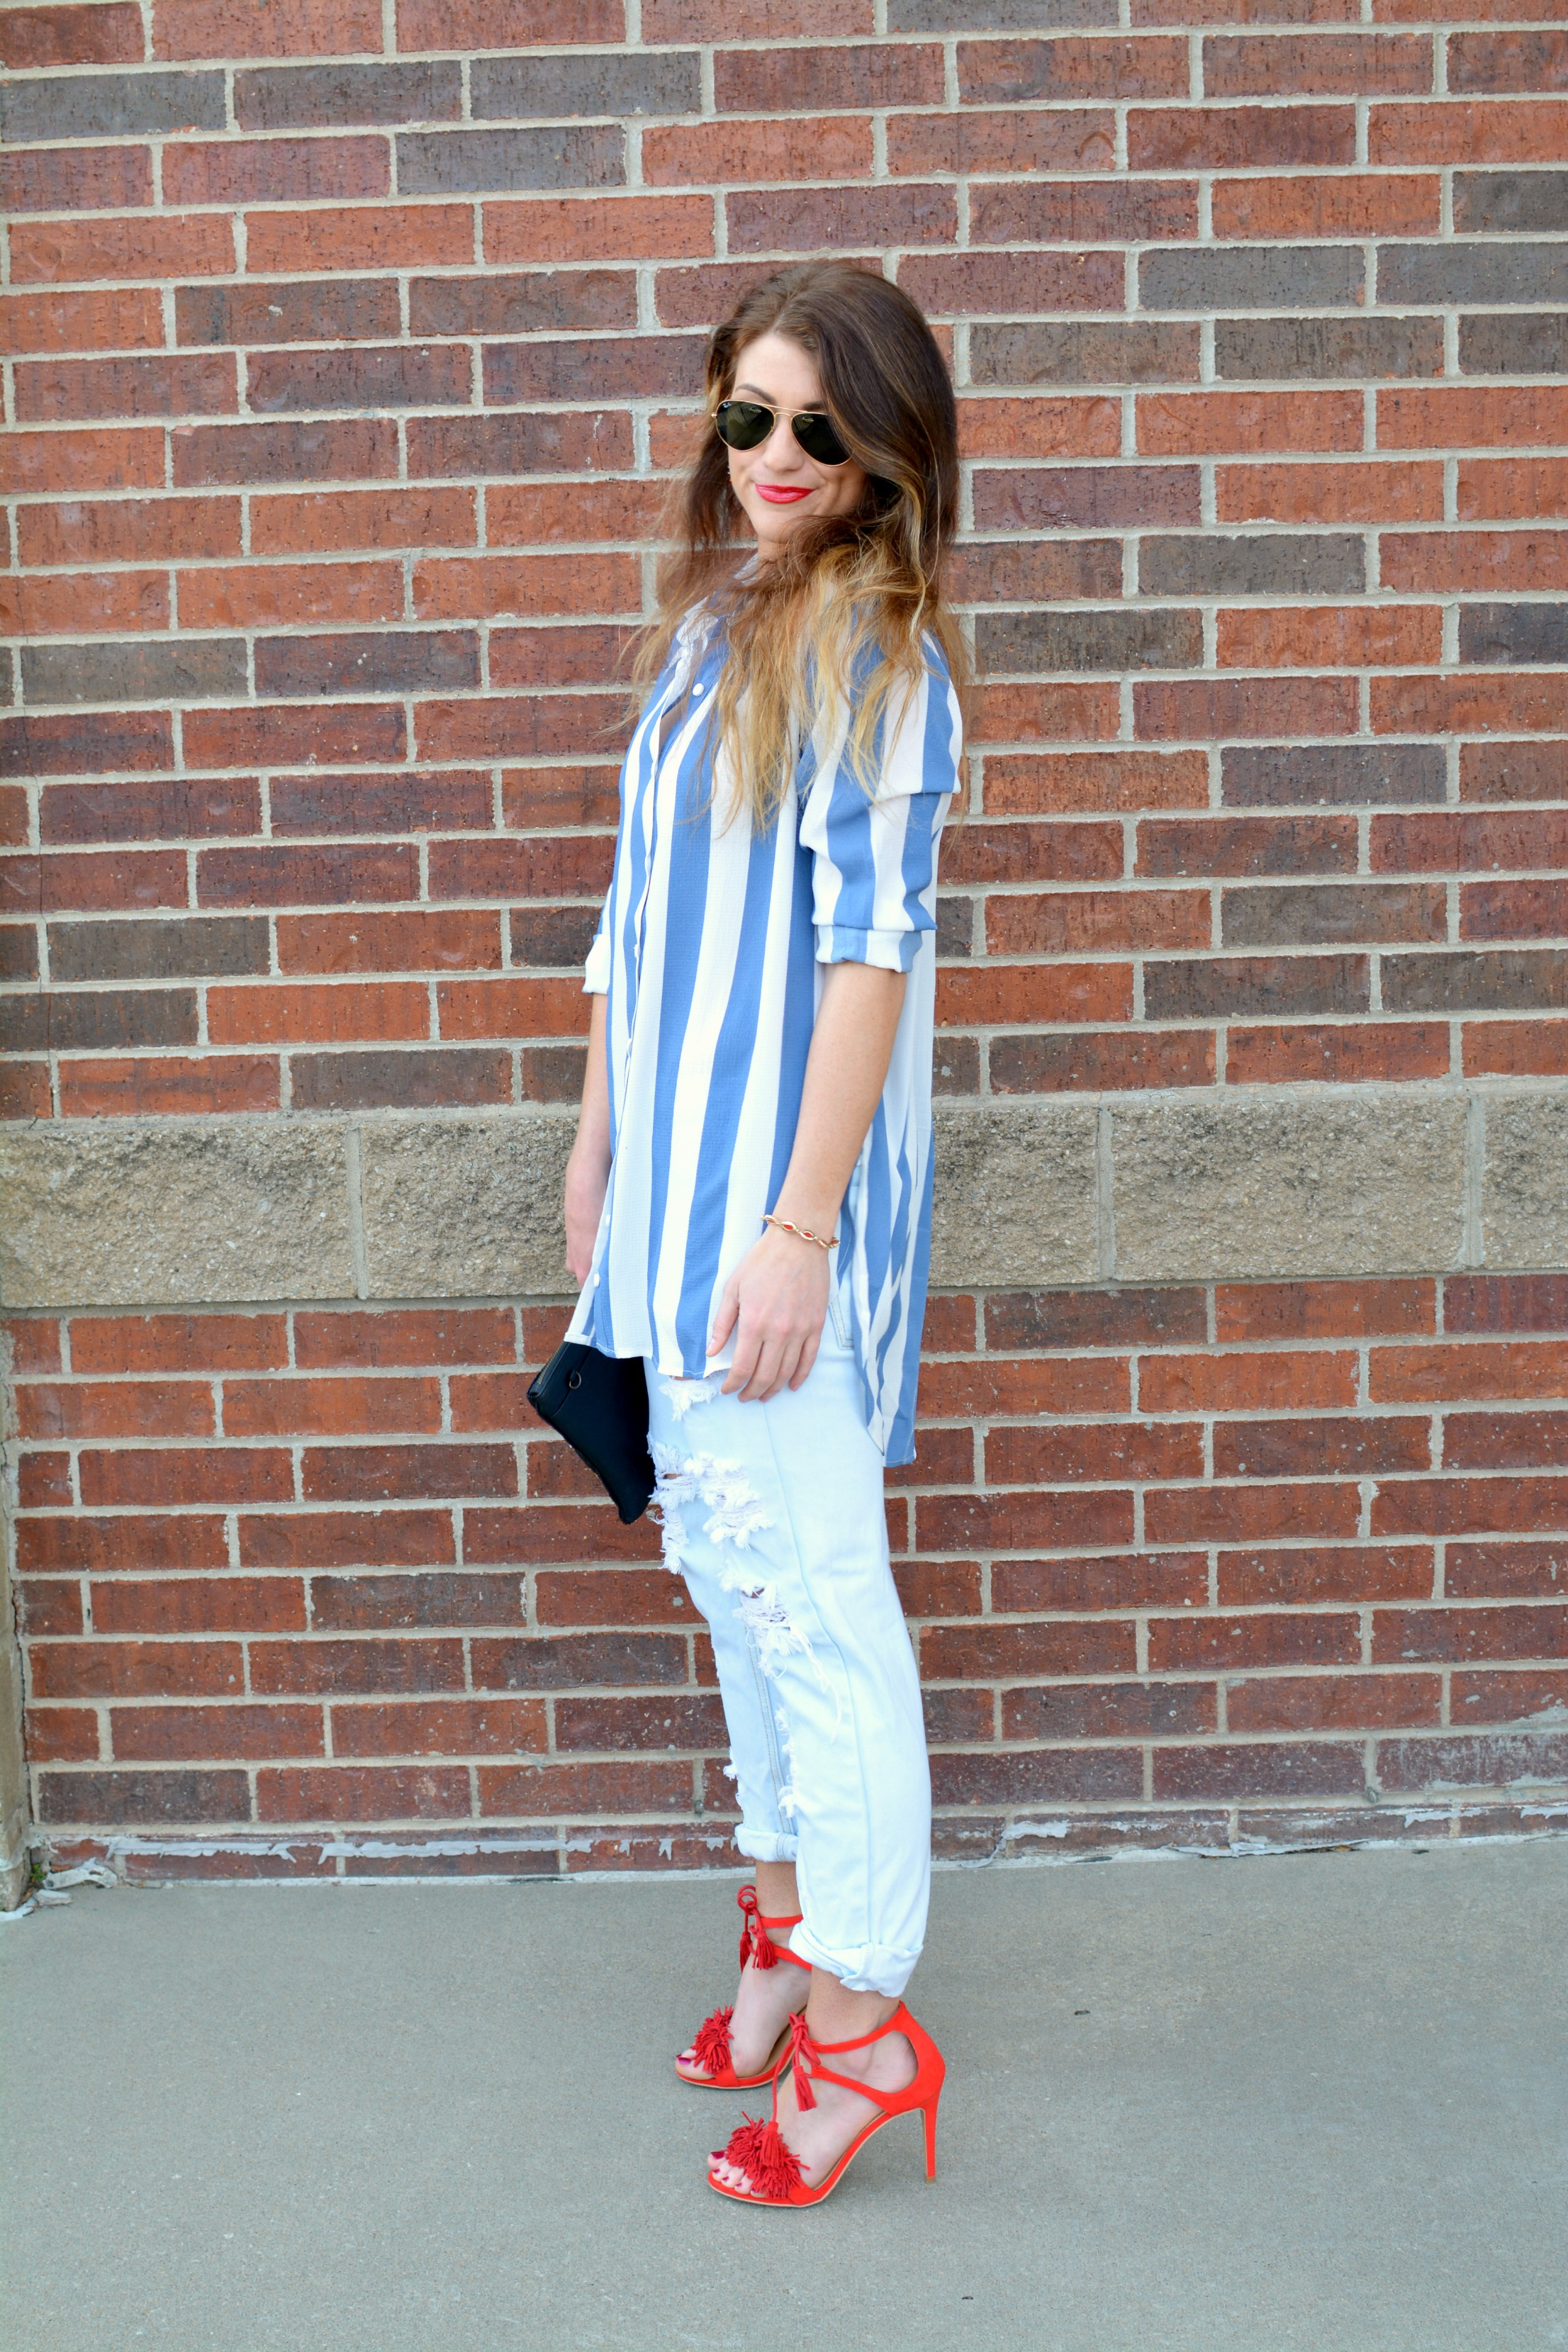 Boohoo Spring Break In A Striped Shirt Le Stylo Rouge